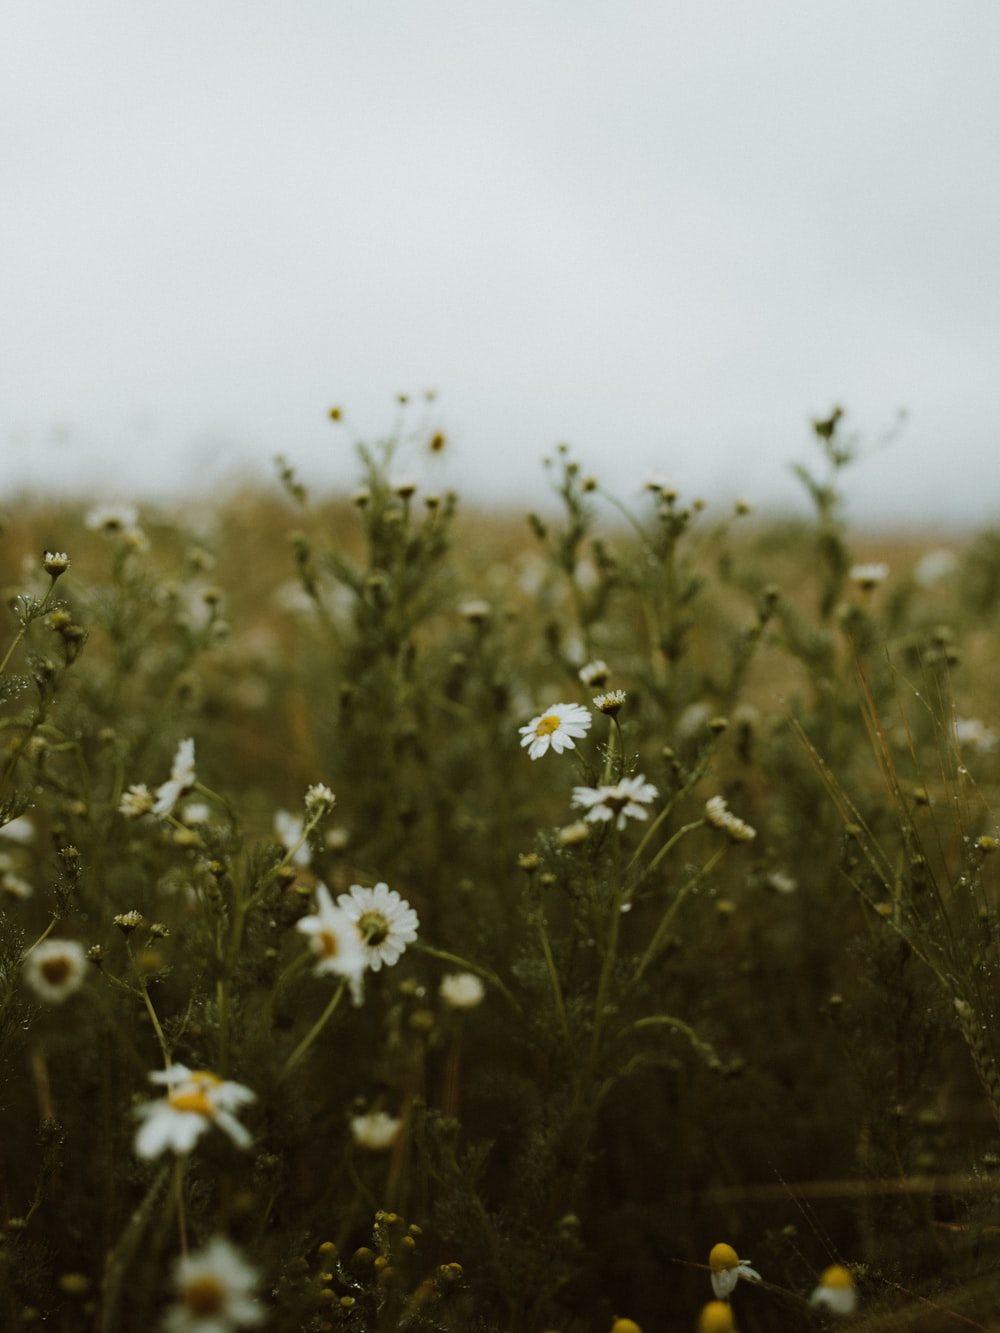 white flowers on brown grass field